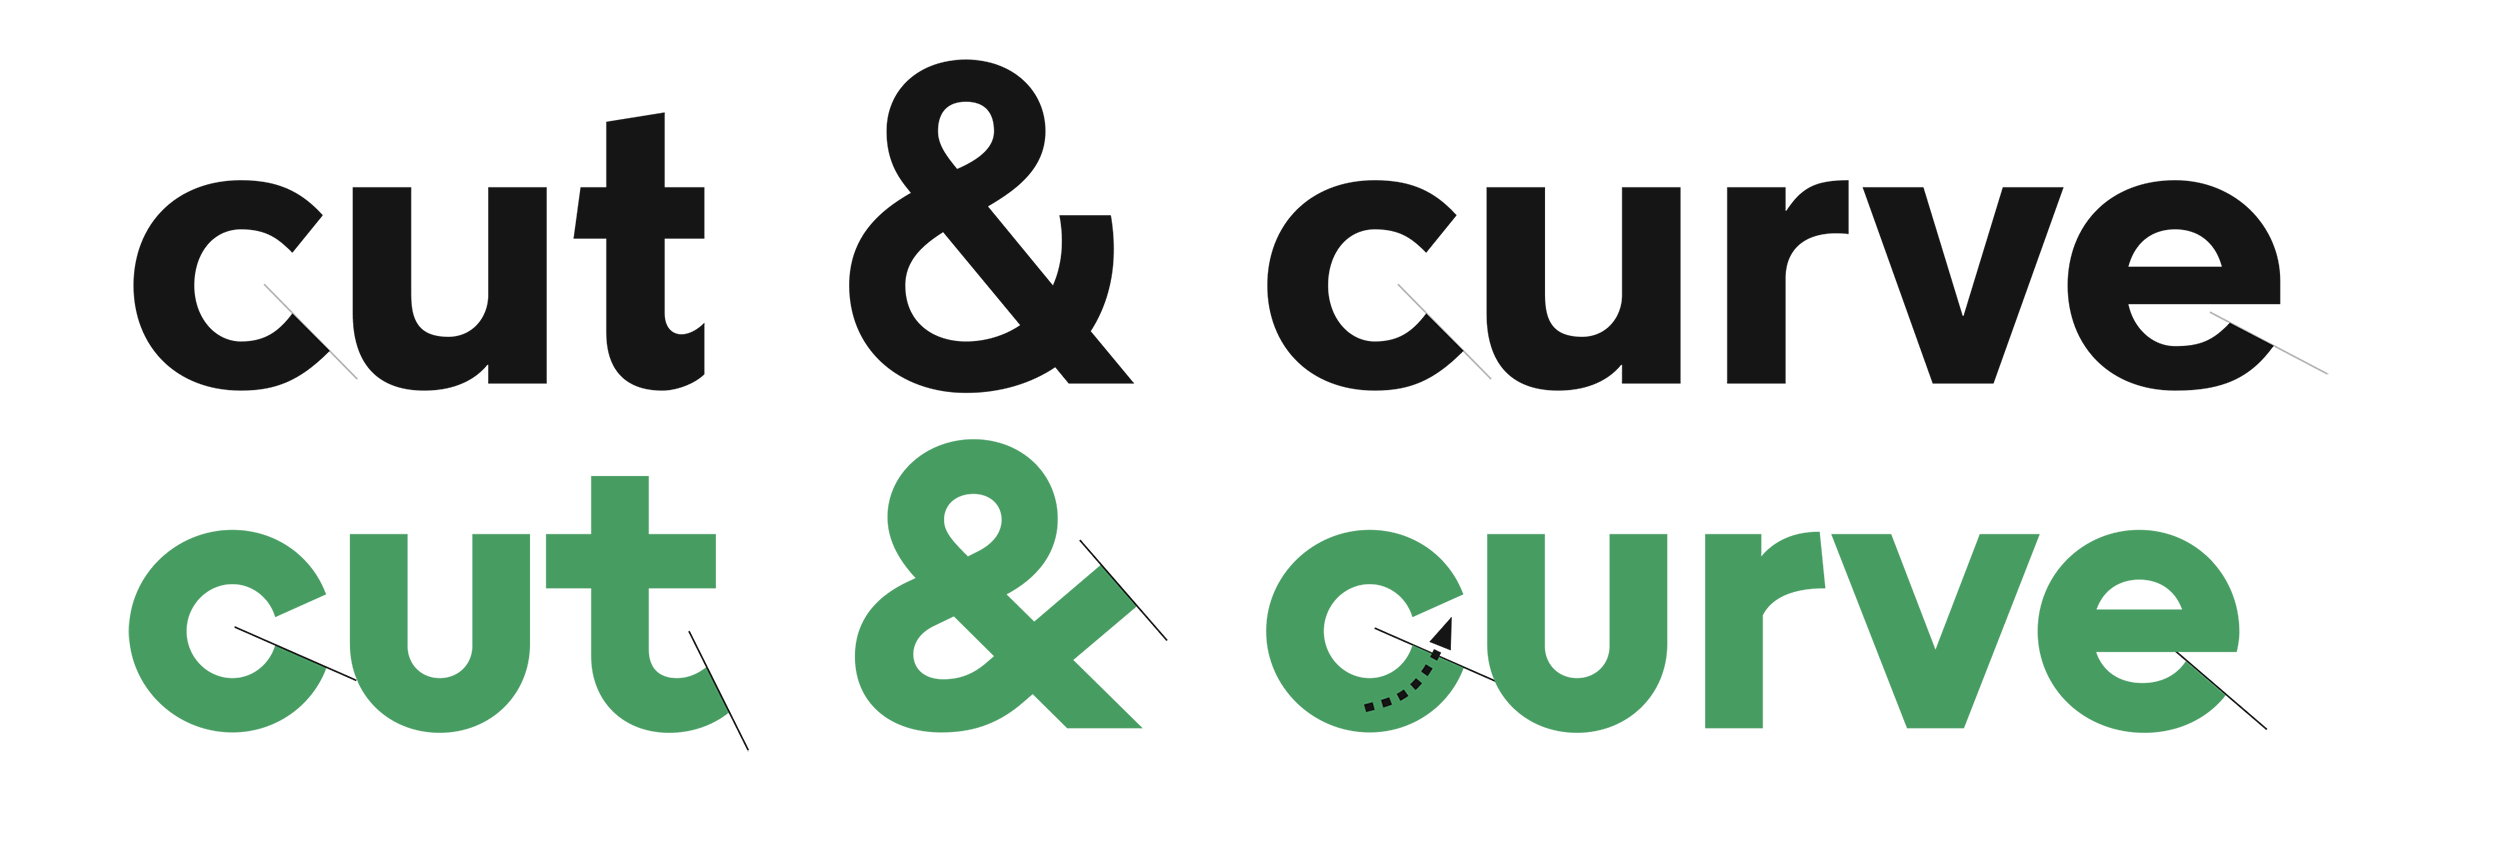 Type Mates Grato Gratimo Classic Grotesk Geometric Font About06 Super Grotesk Reference